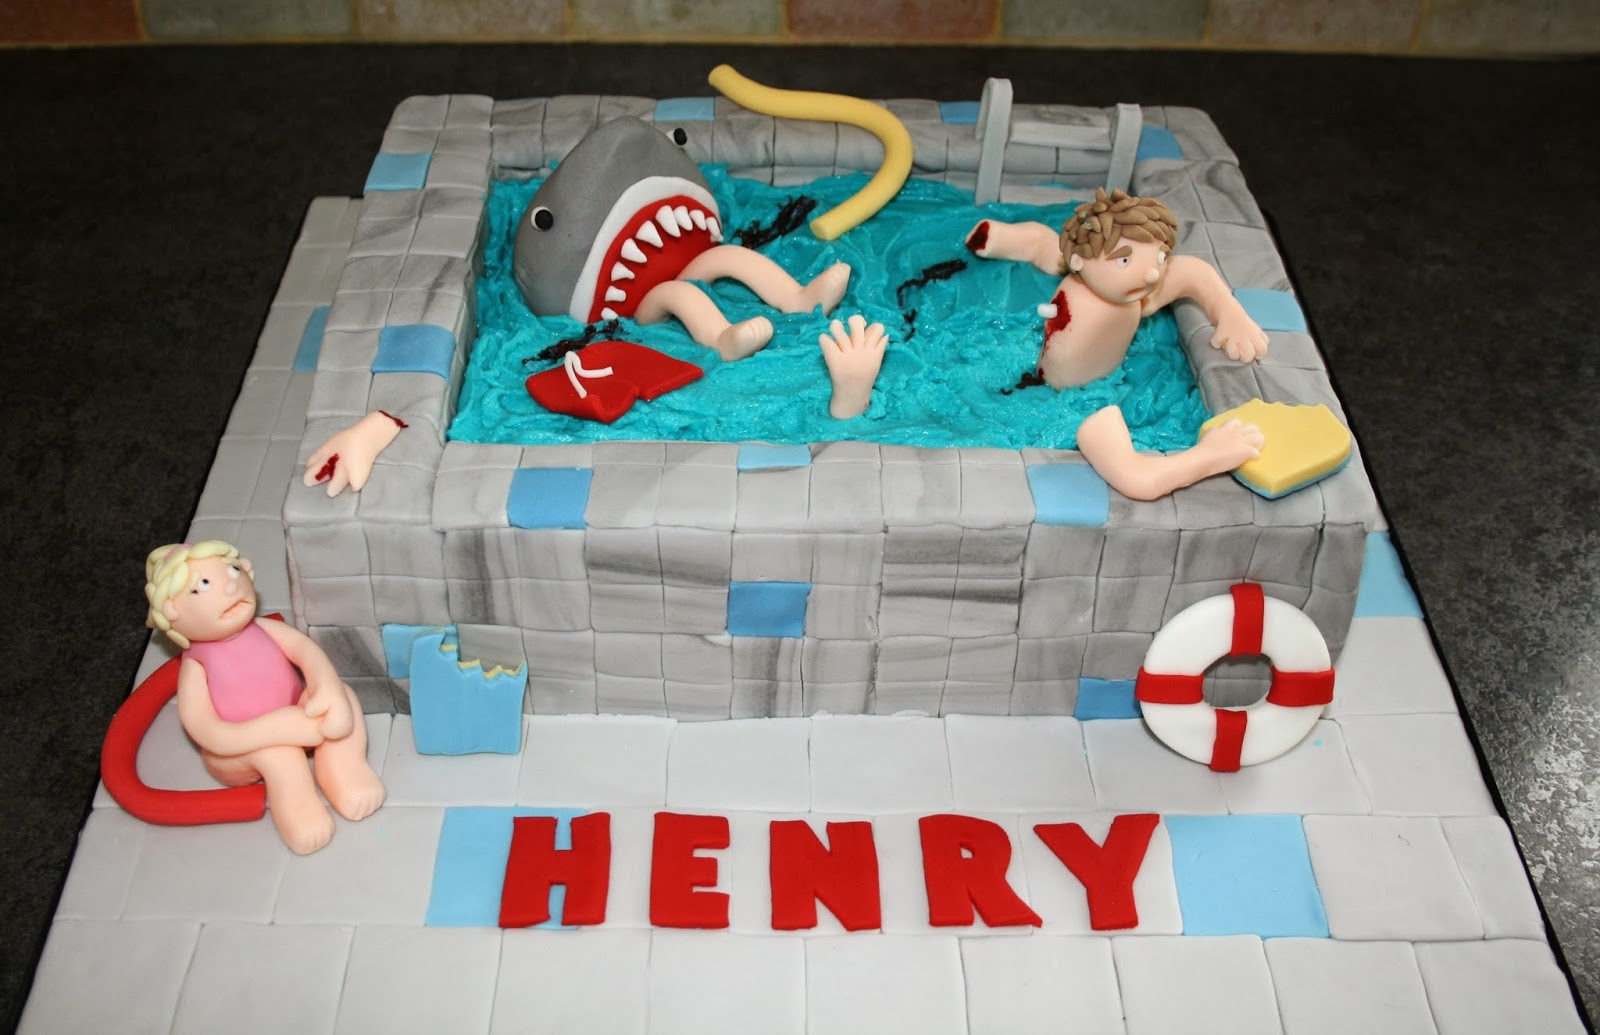 Cake Time Gruesome Shark Attack Swimming Pool